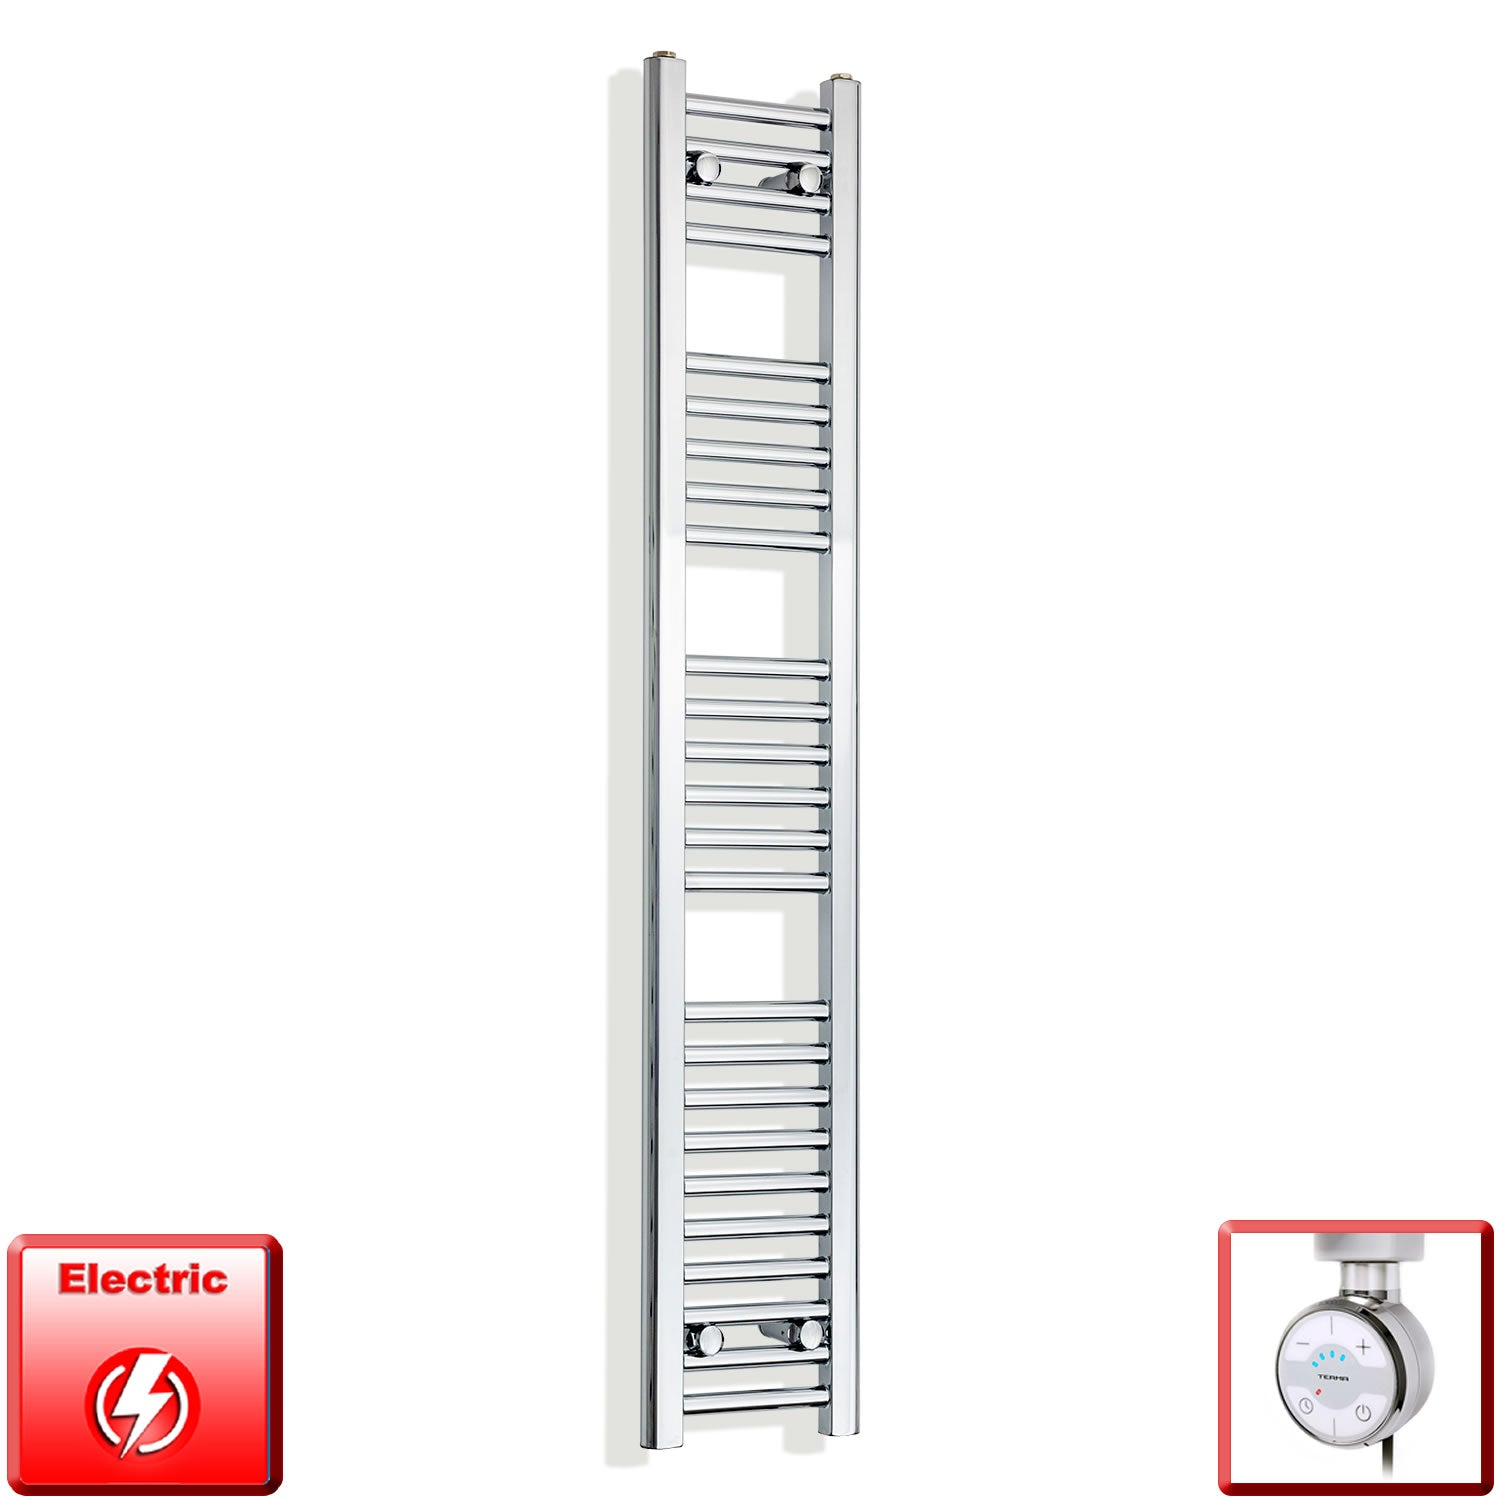 250mm Wide 1400mm High Pre-Filled Chrome Electric Towel Rail Radiator With Thermostatic MOA Element